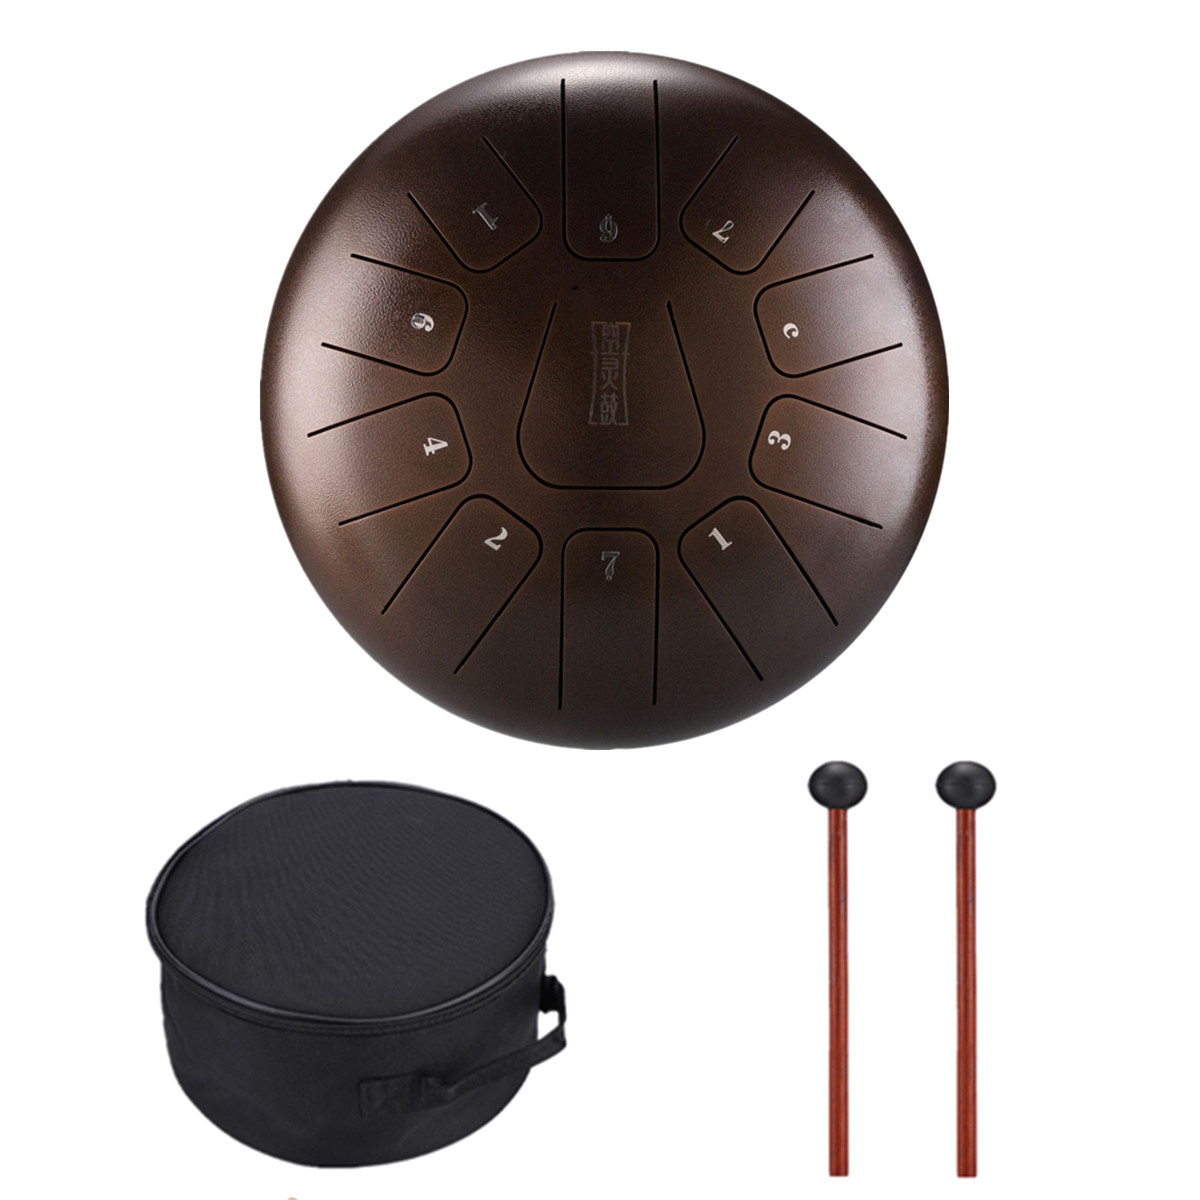 C Major 11 Notes Hand Pan Handpan Tongue Tank Drum 12 Inch Percussion, Tongue Drum, Handpan Drum with Mallets & Bag